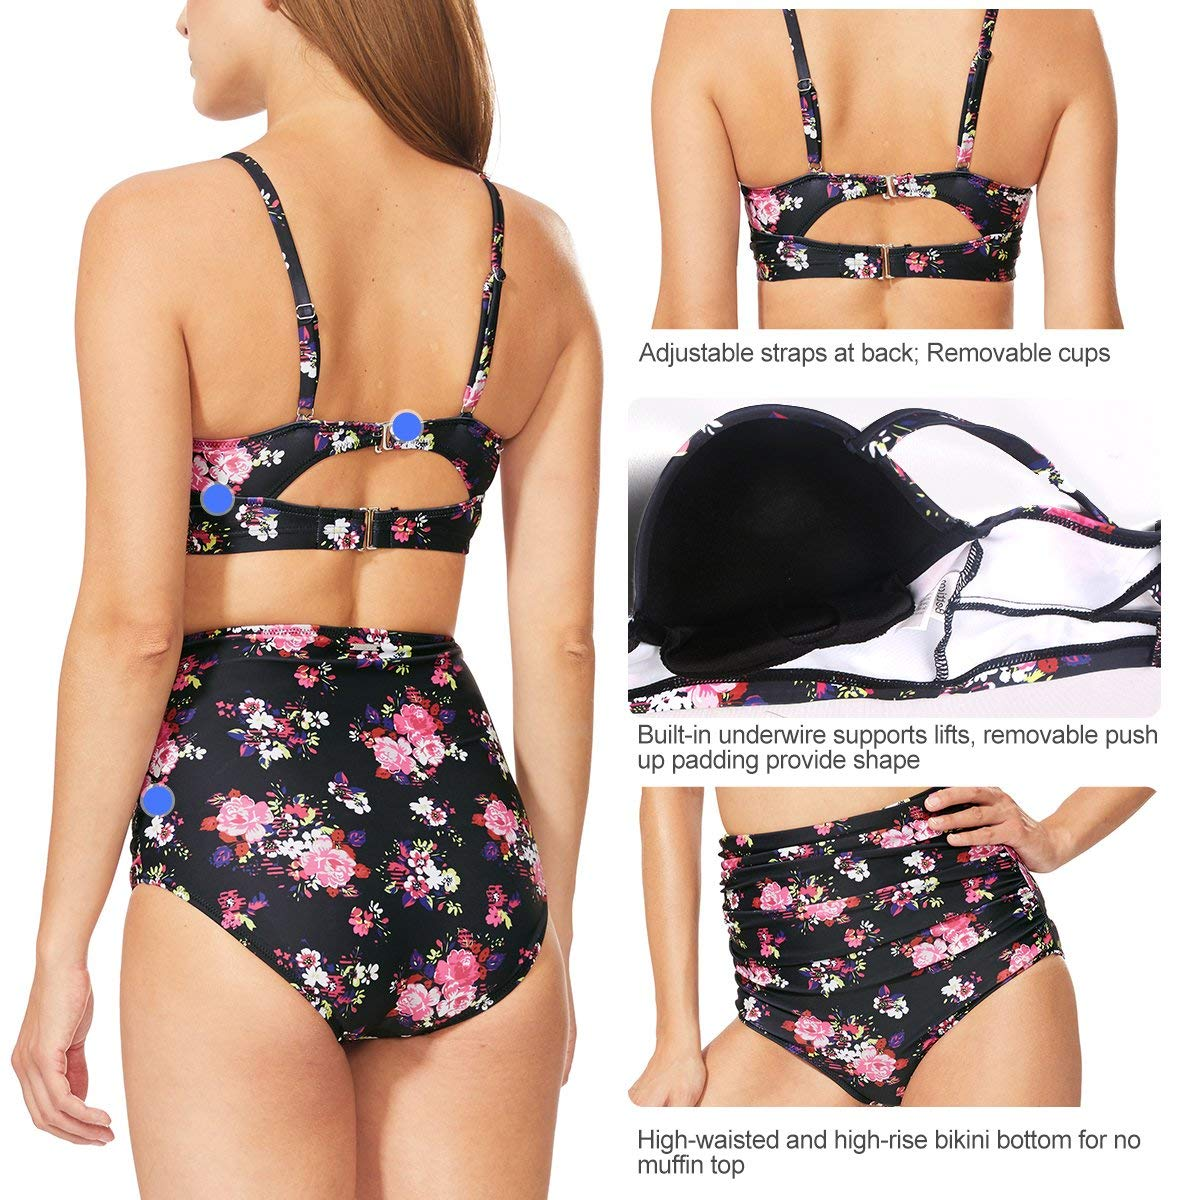 2ddde53c59f46 Amazon.com: Baleaf Women's High Waist Retro Floral Push Up Swimsuit Two  Piece Bikini Bottom: Clothing